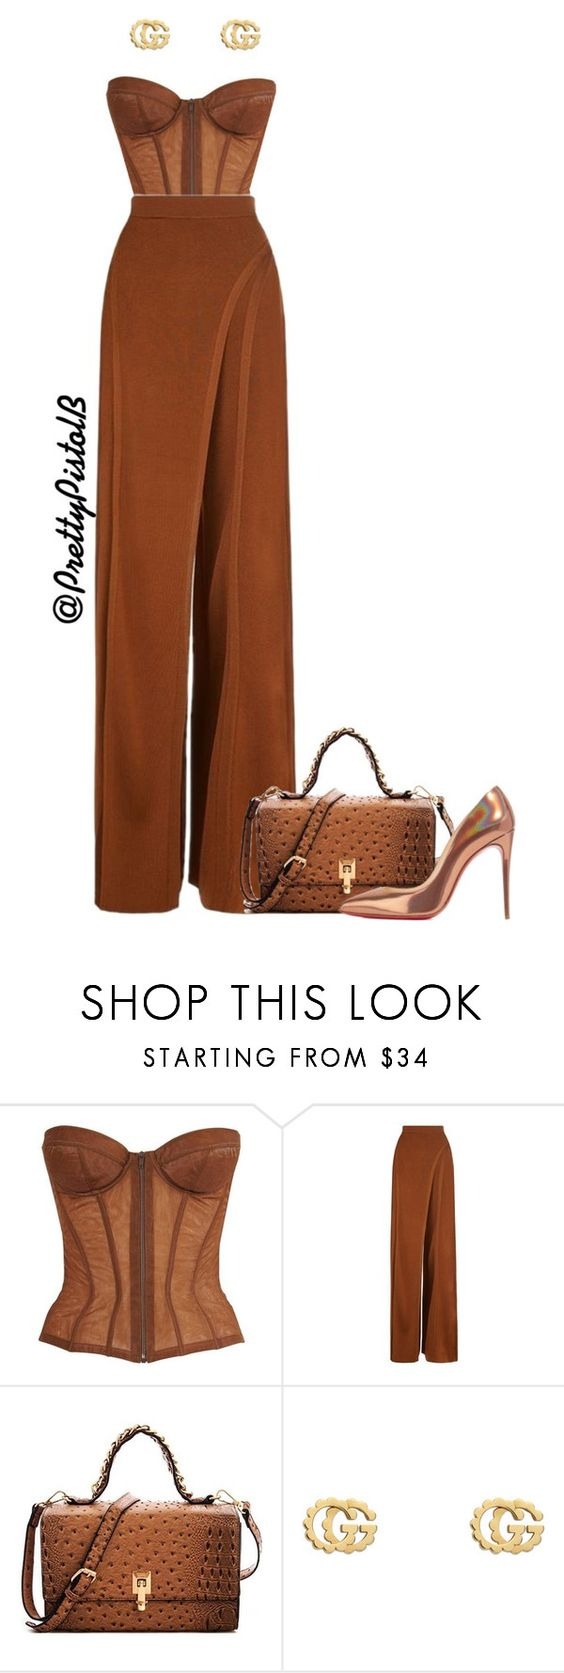 """Untitled #138"" by btatum1993 on Polyvore featuring Chanel, Balmain, Gucci and Christian Louboutin"